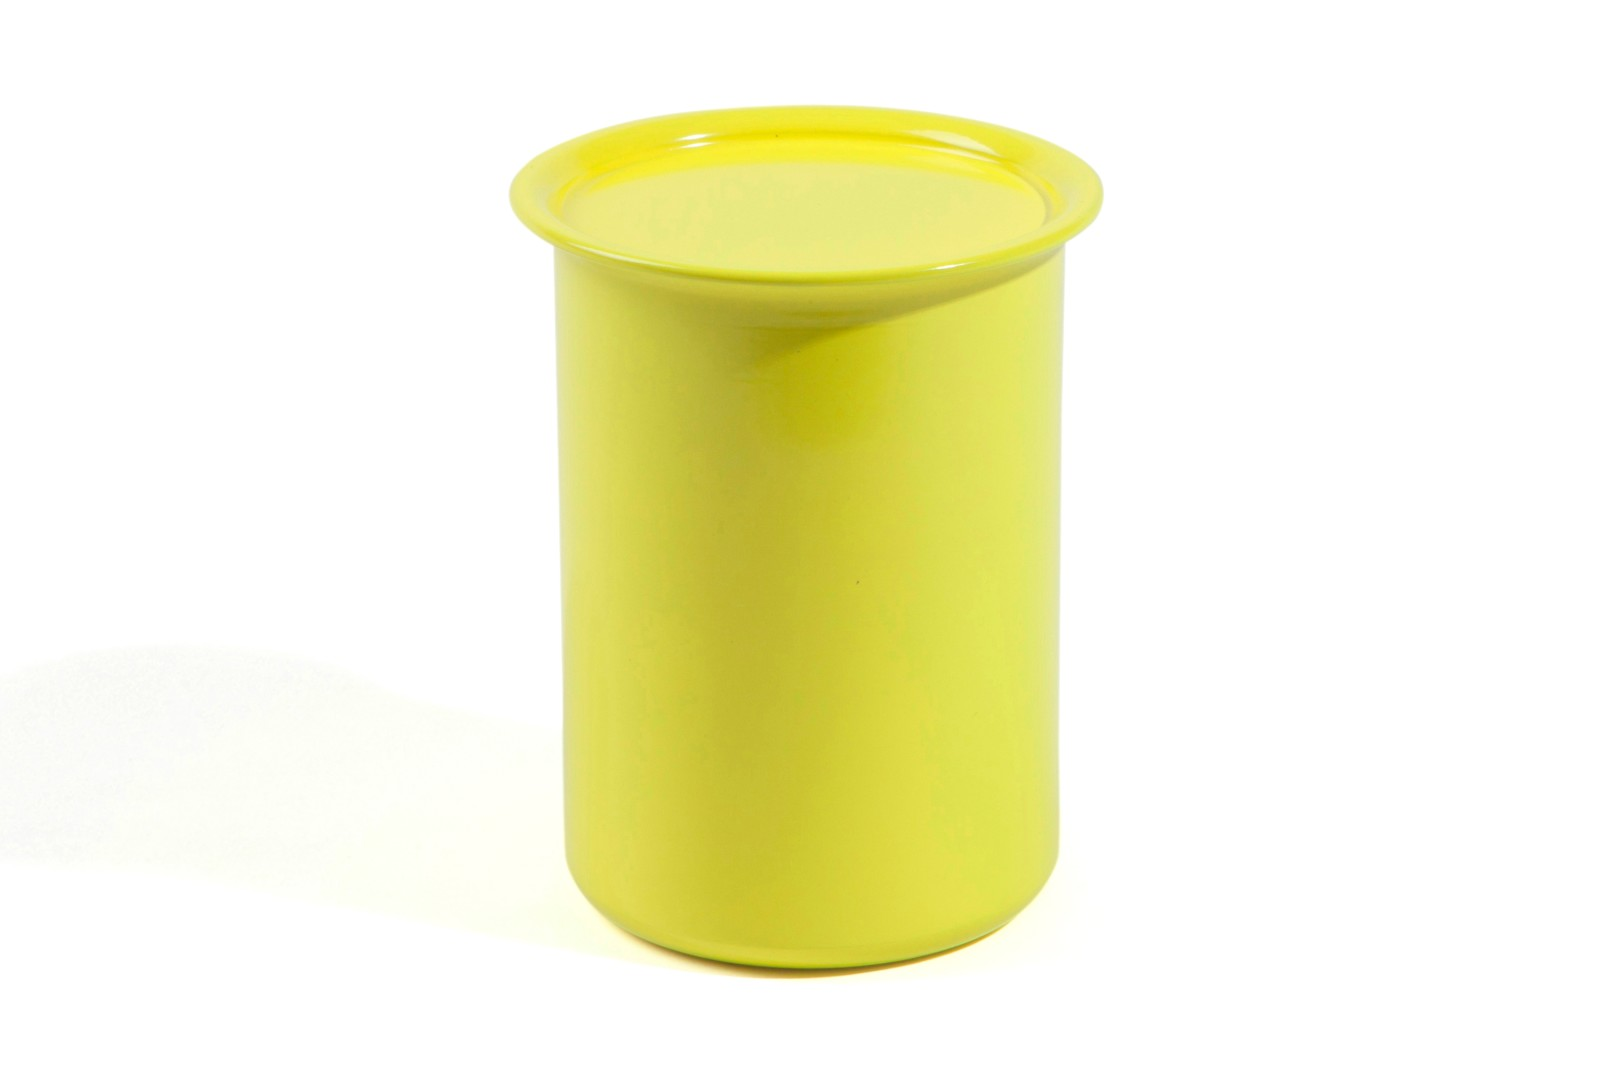 Ayasa Storage Container Yellow with Metal Lid, 0.75L